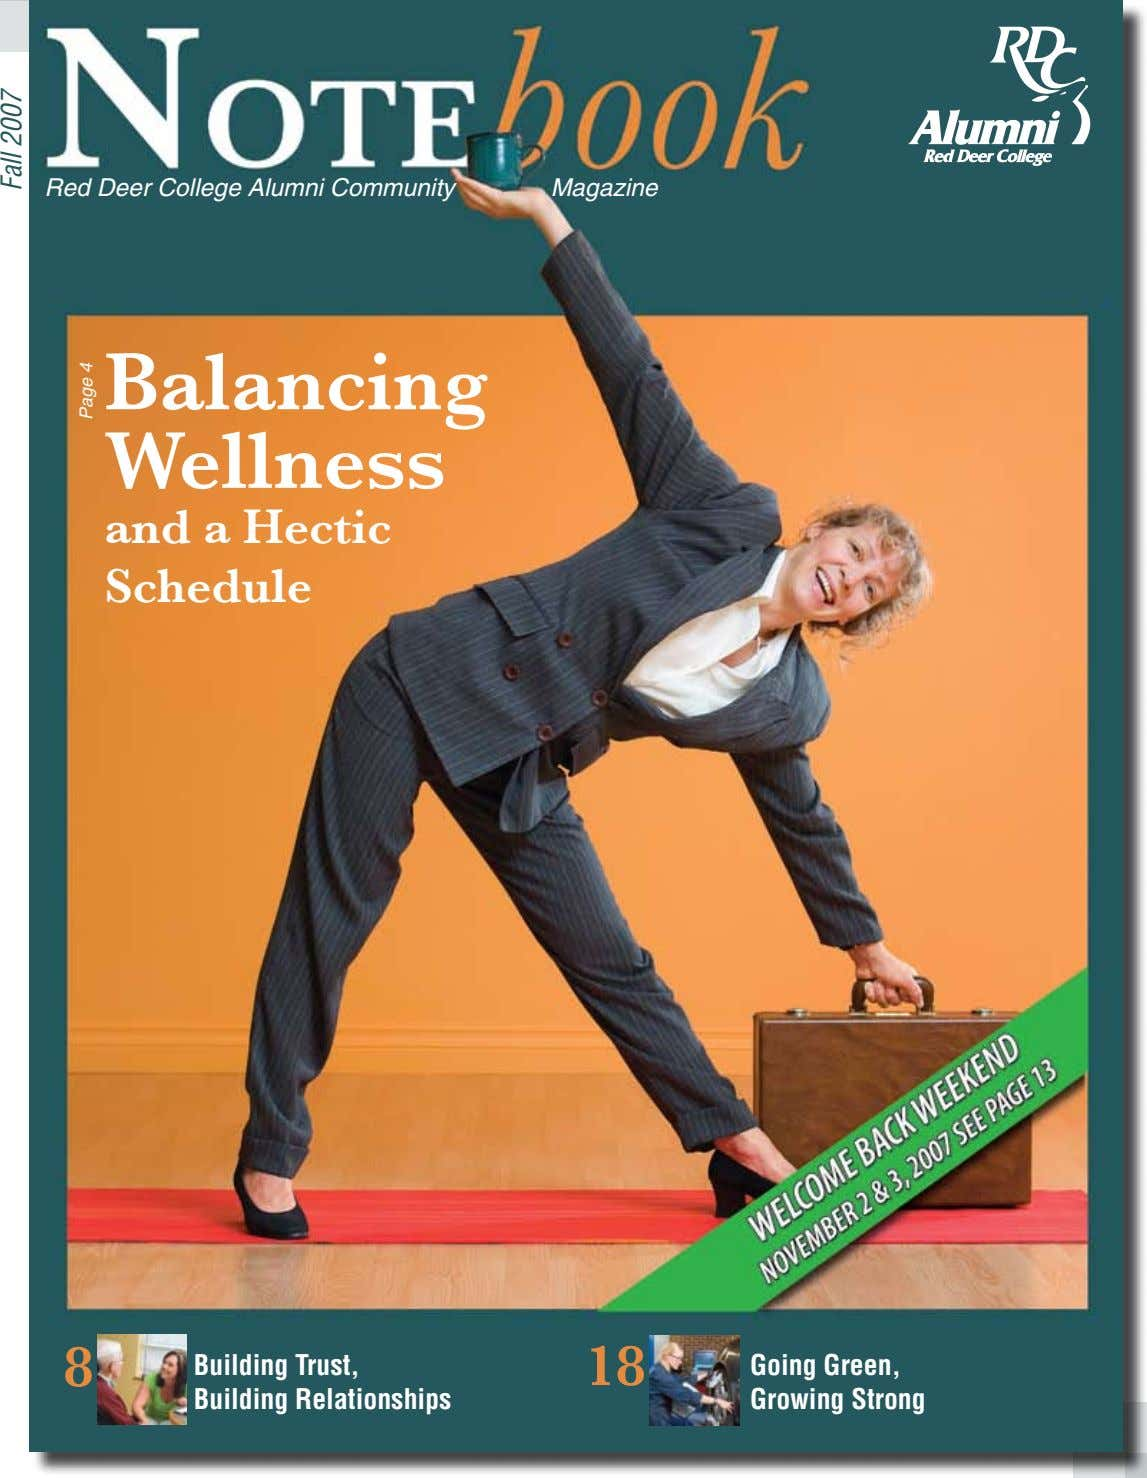 Red Deer College Alumni Community Magazine Balancing Wellness and a Hectic Schedule 8 Building Trust,